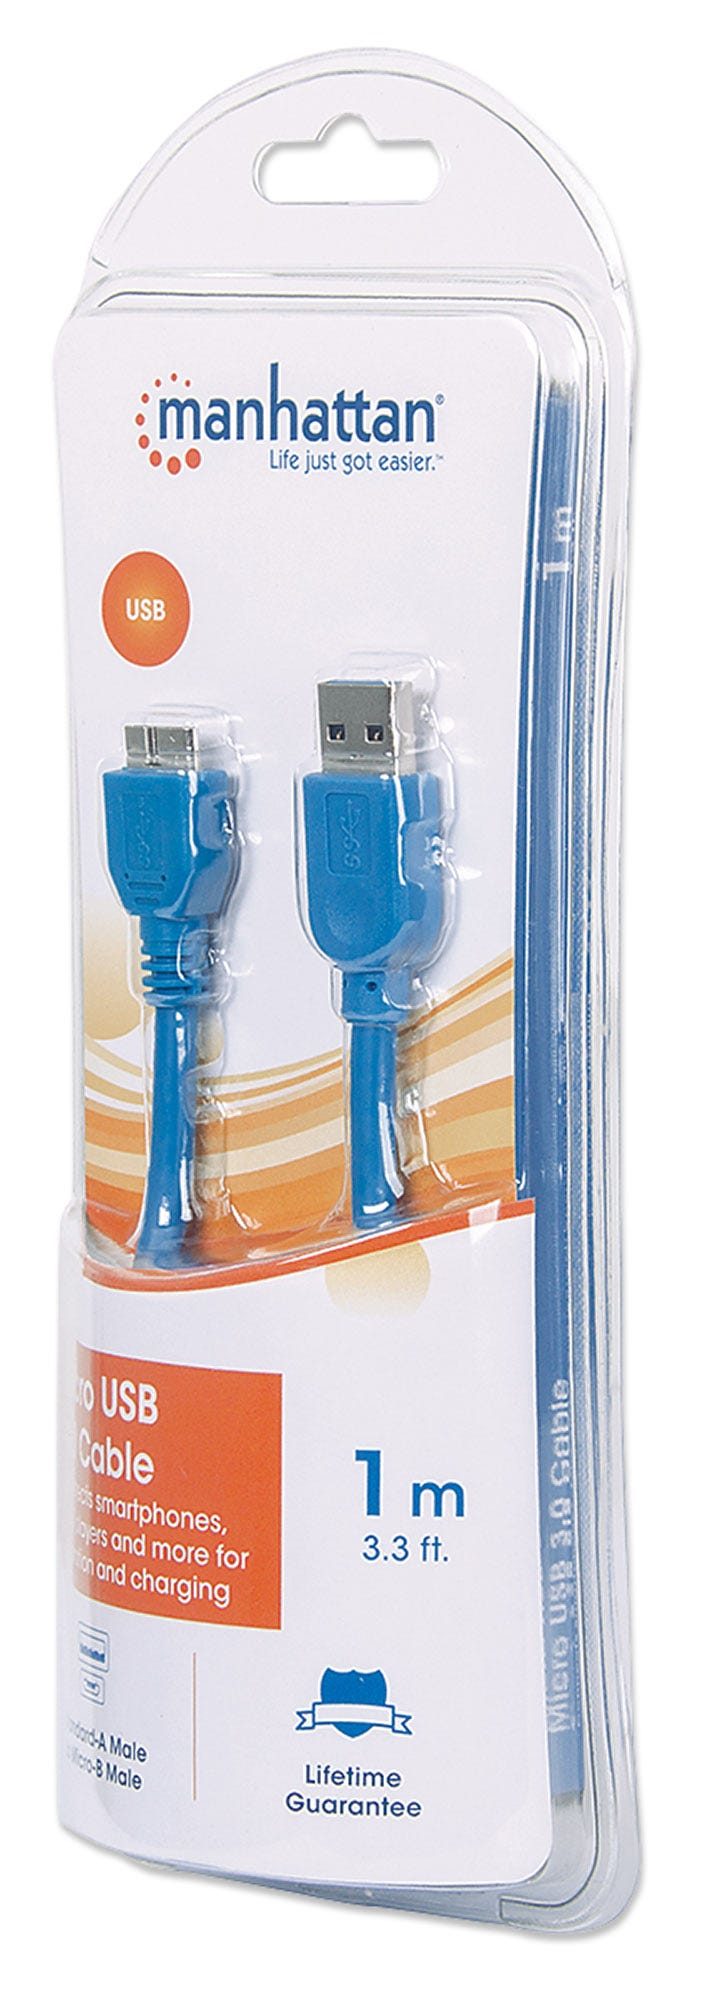 Manhattan USB-A to Micro-USB Cable, 1m, Male to Male, 5 Gbps (USB 3.2 Gen 1)